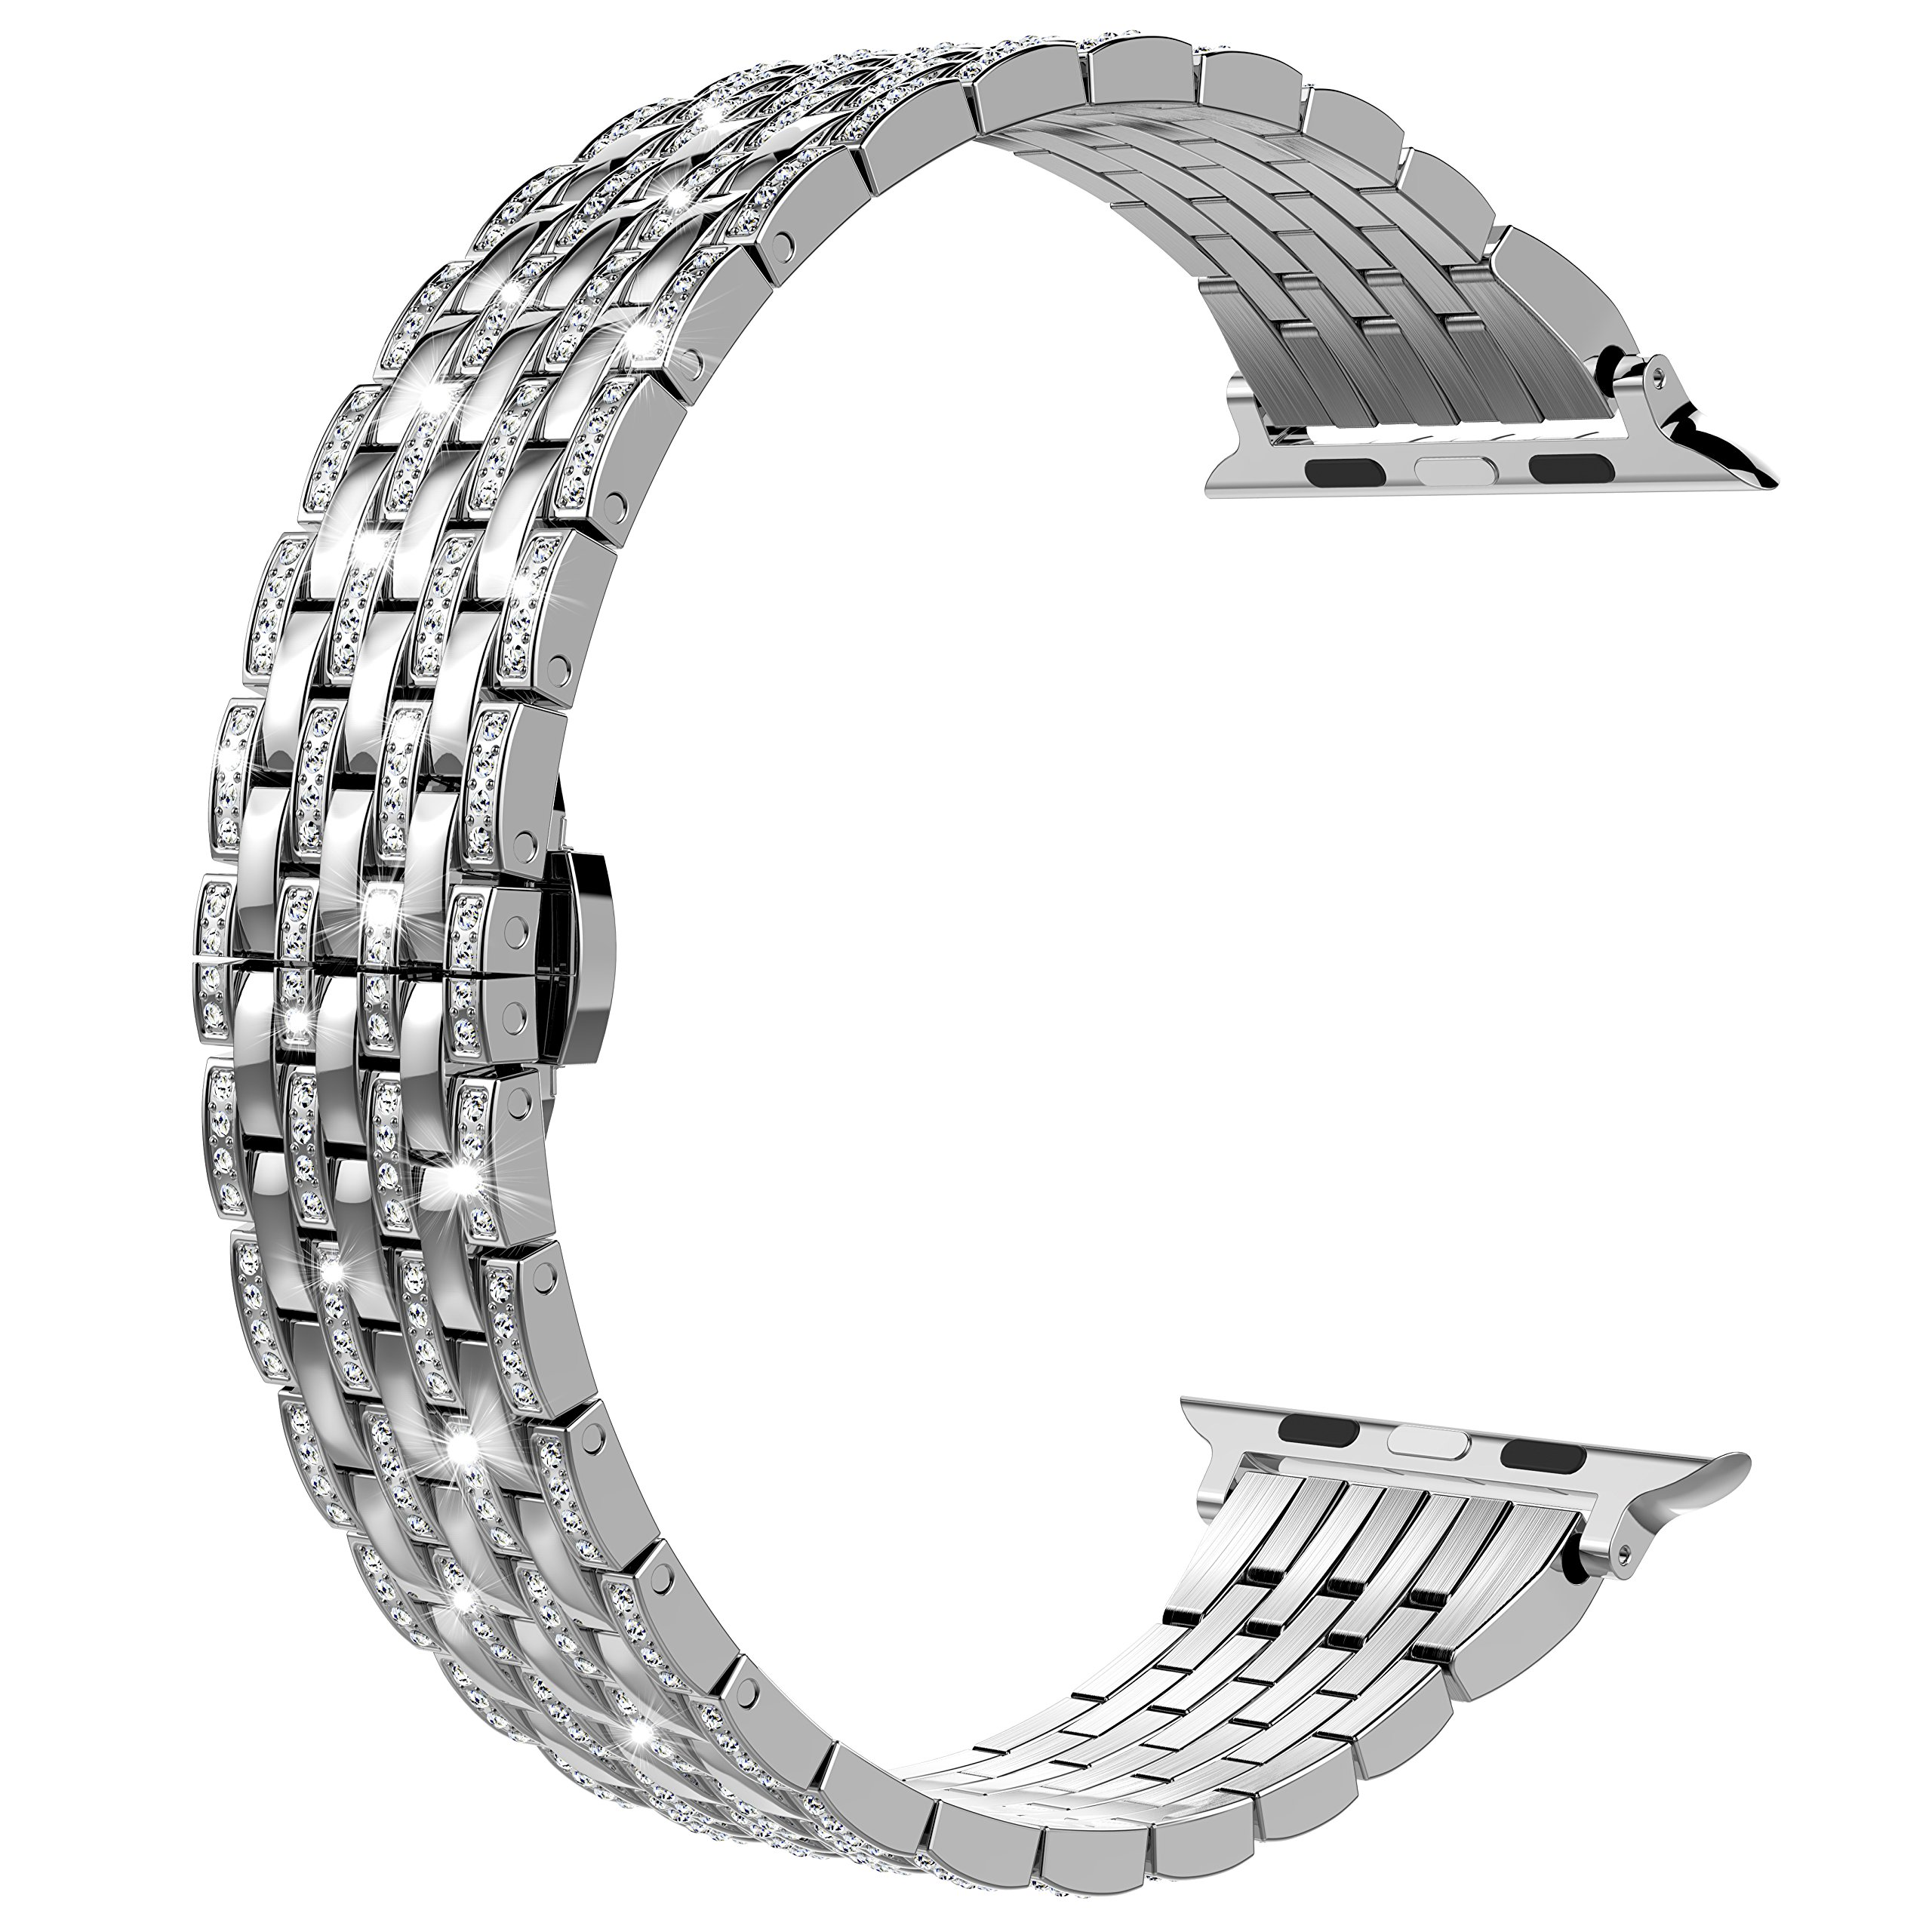 Wearlizer Silver Bling Compatible with Apple Watch Band 42mm 44mm Womens Crystal Rhinestone for iWatch Luxury Stainless Steel Bracelet Strap Diamond Wristbands Replacement Series 5 4 3 2 1 Edition by Wearlizer